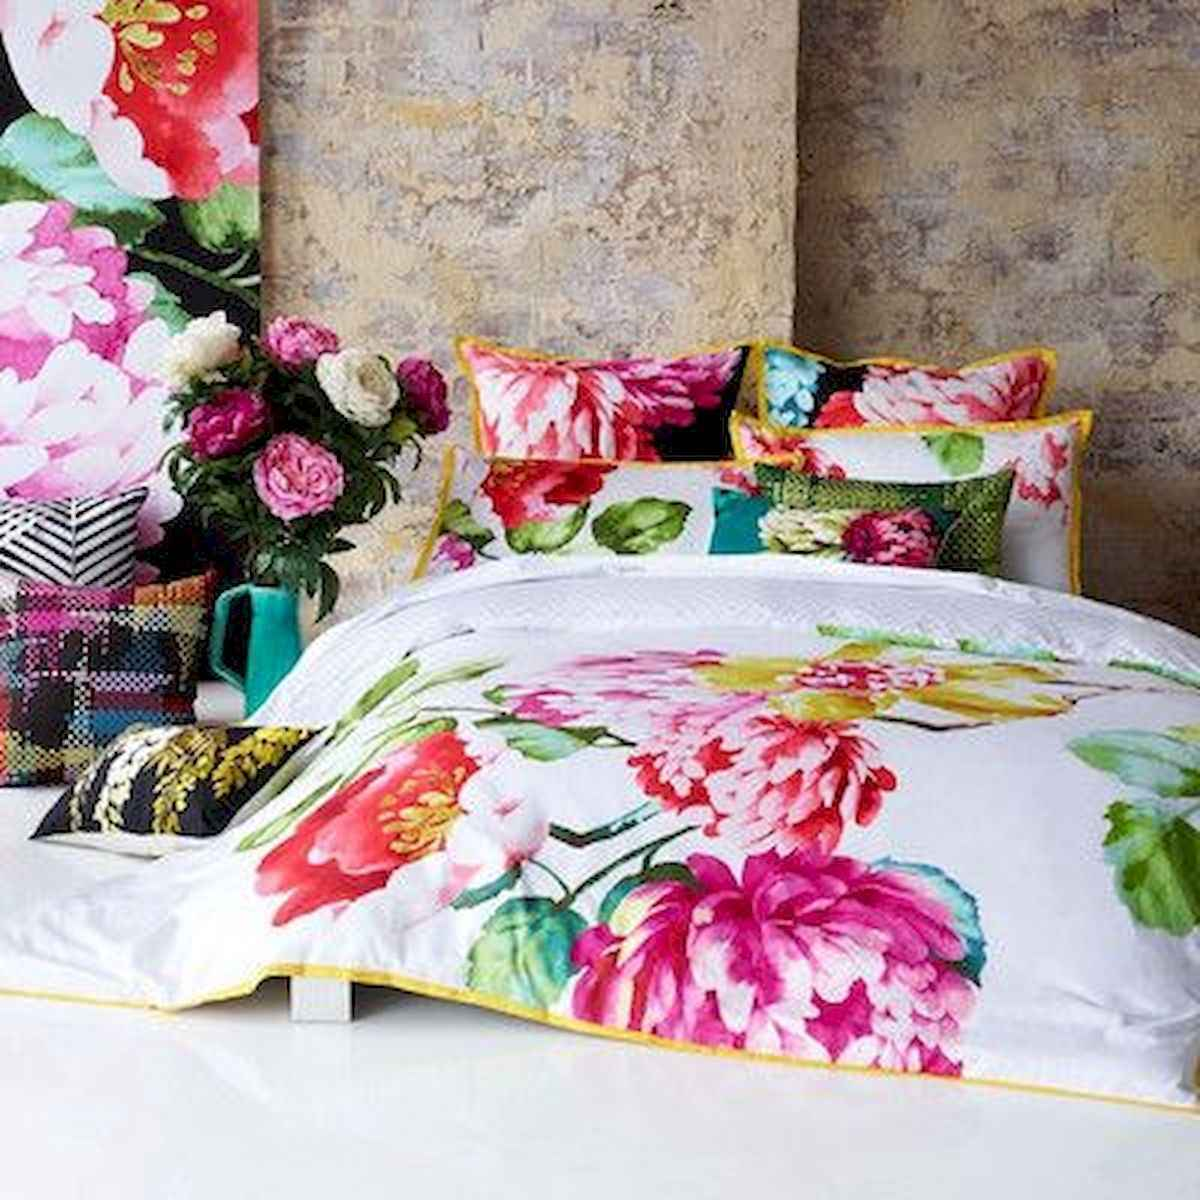 70+ Amazing Colorful Bedroom Decor Ideas And Remodel for Summer Project (14)